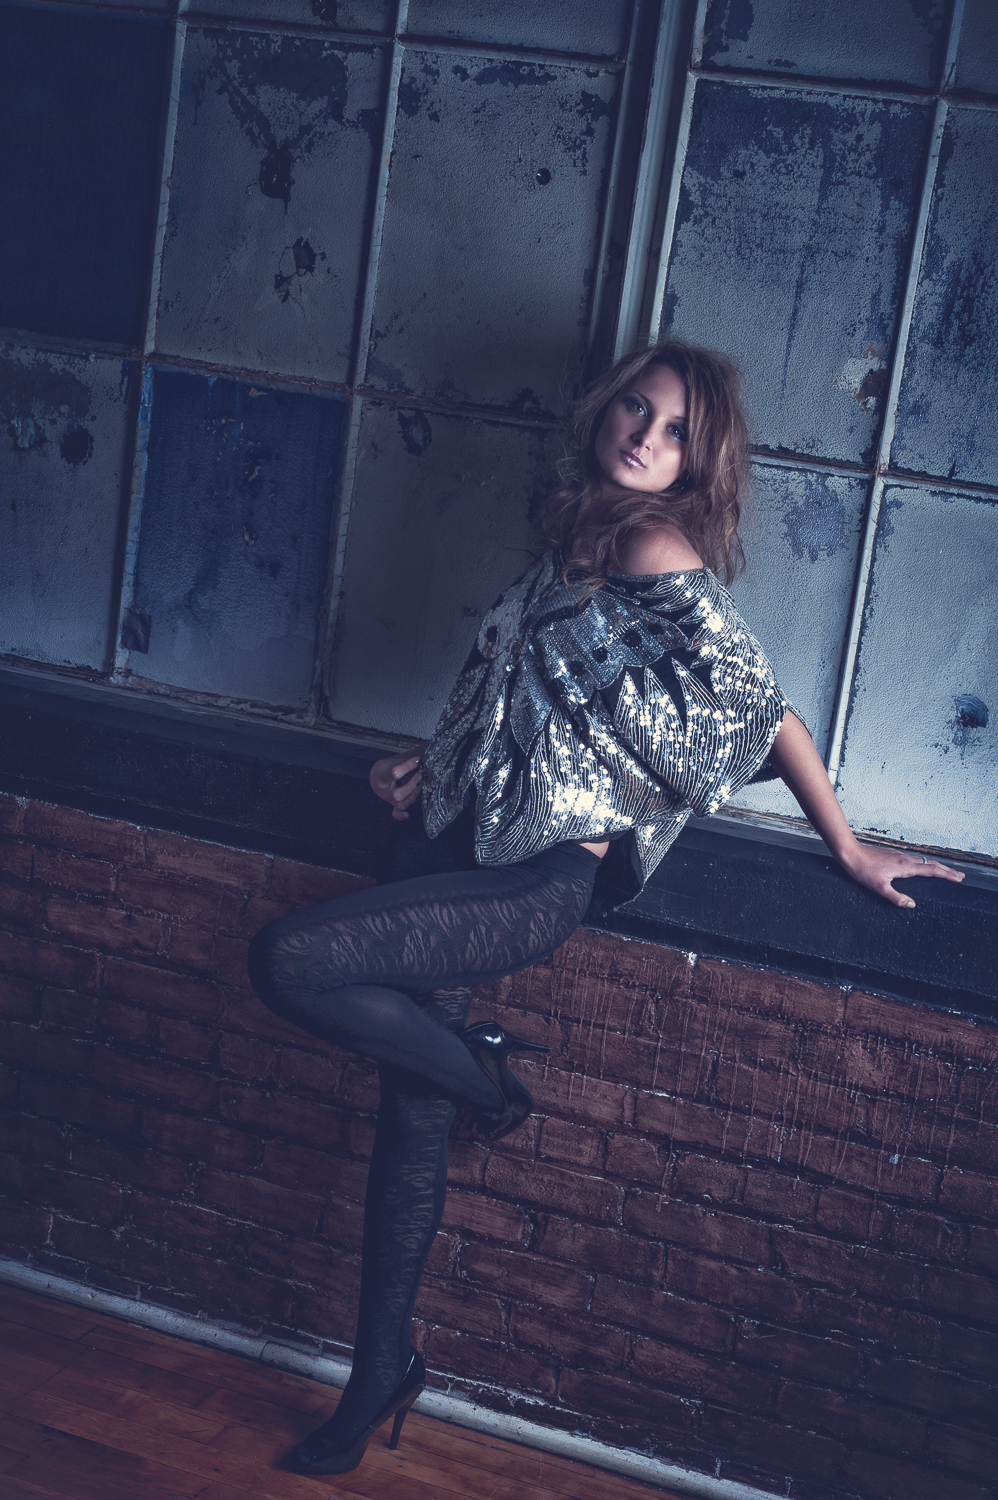 Hamilton Toronto Female Fashion Photographer - Sequin Top by Marek Michalek.jpg